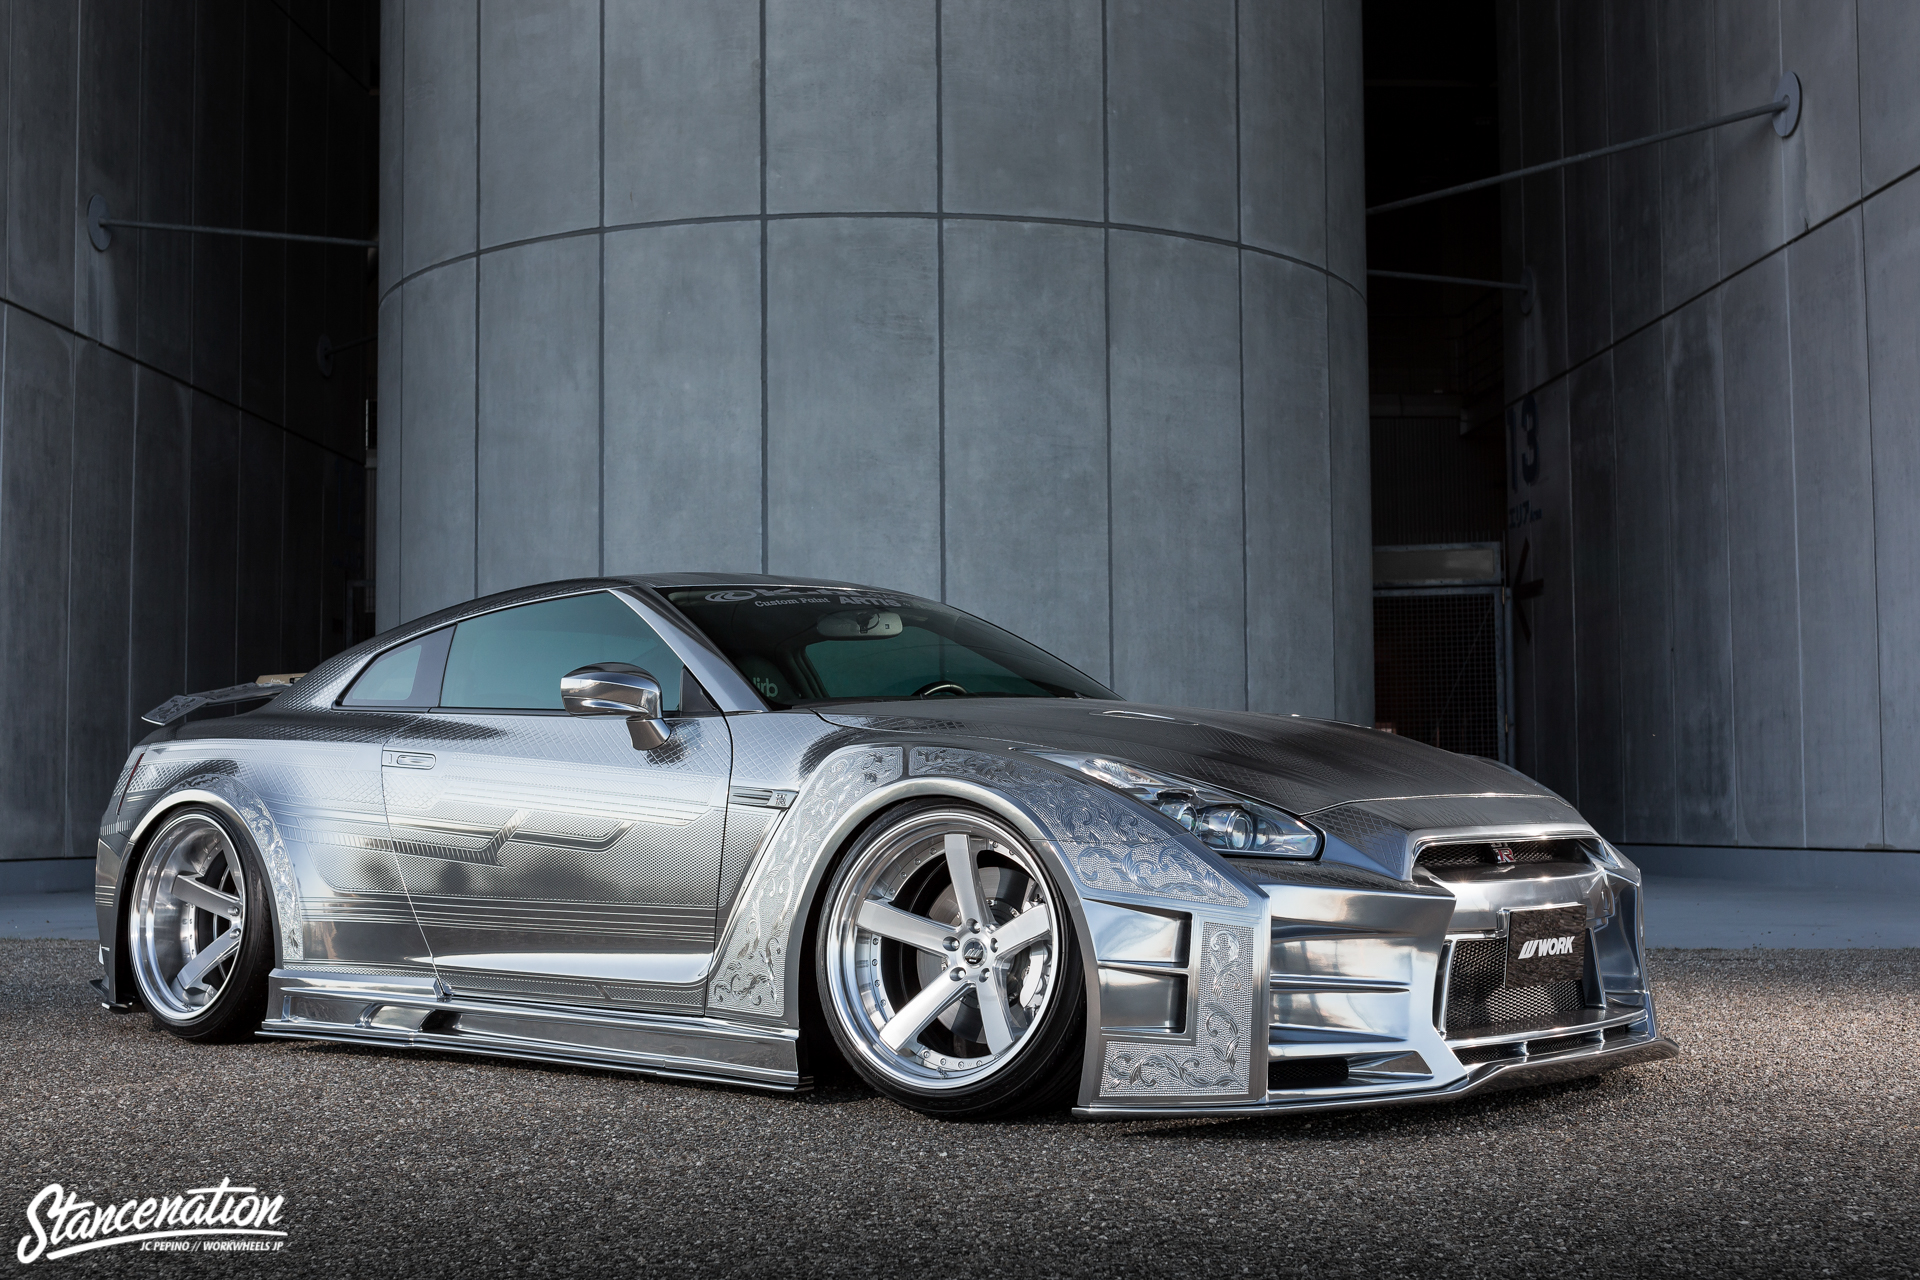 The Kuhl Kid Kuhl Racing S R35 Gtr Stancenation